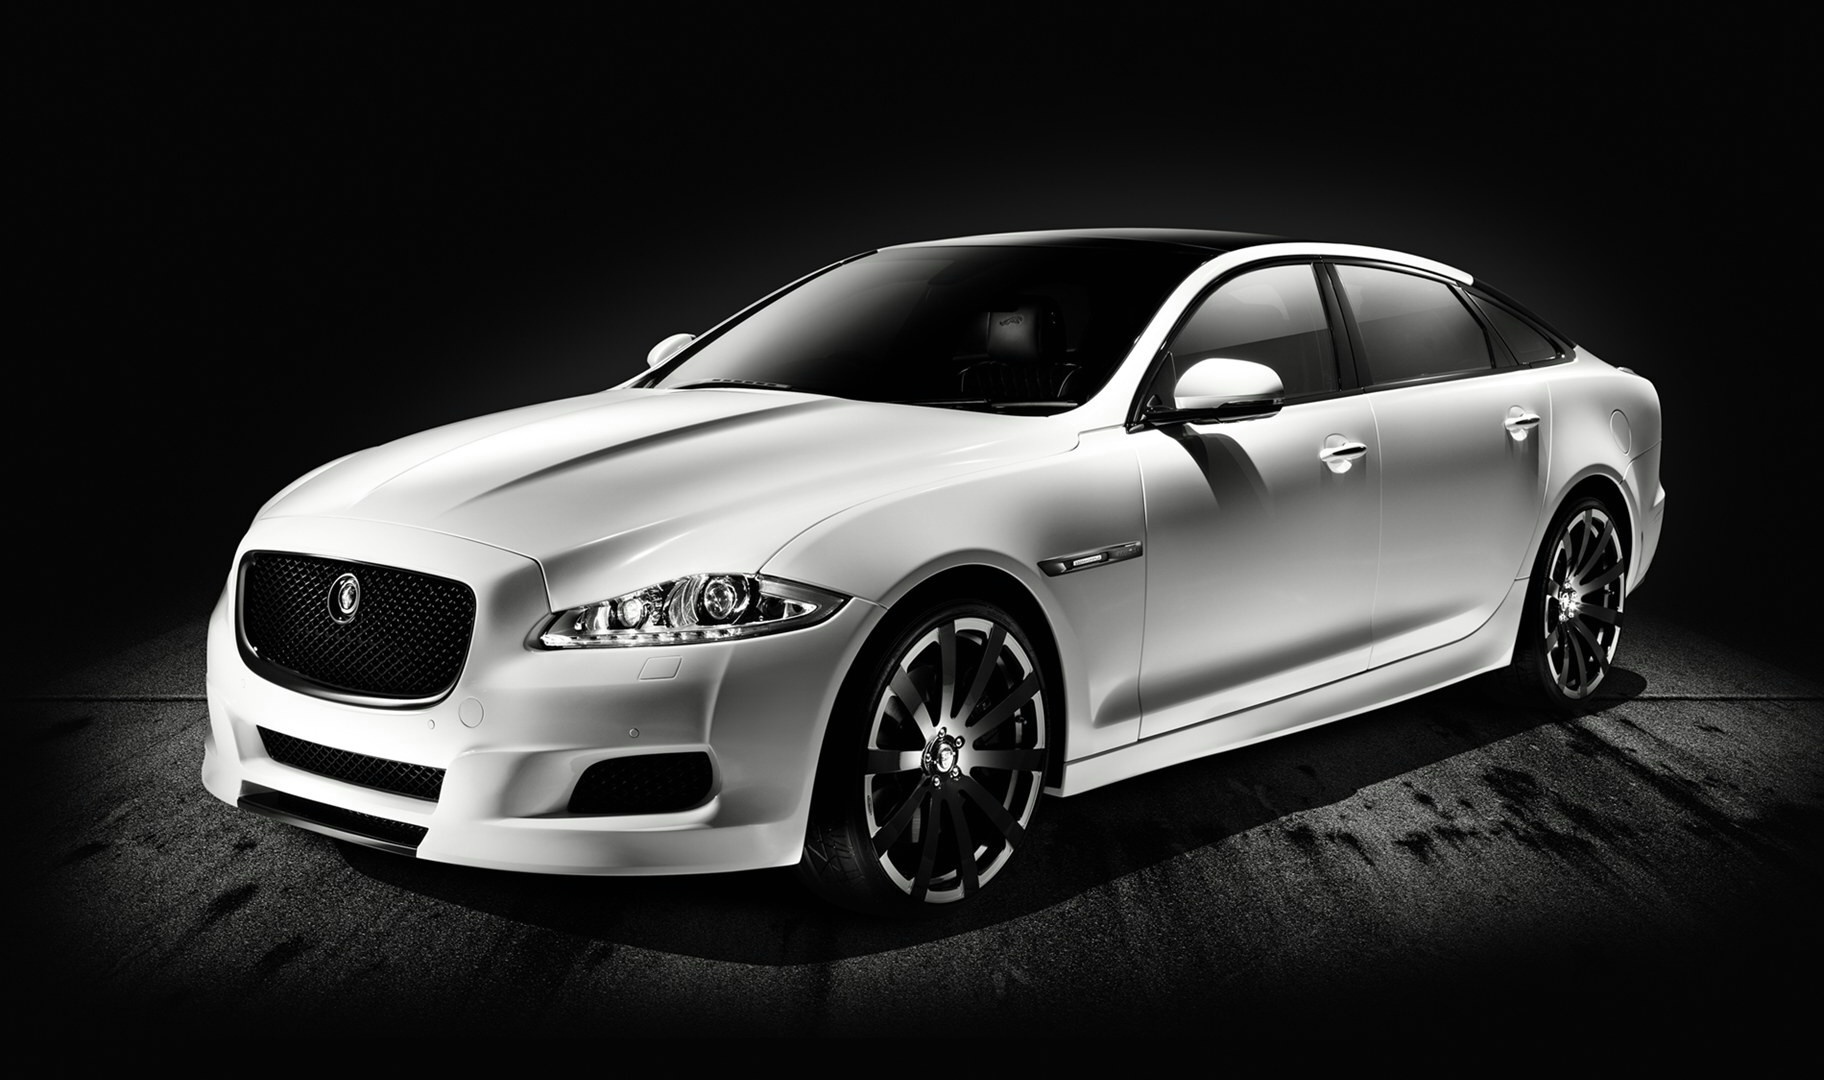 2010 Jaguar XJ75 Platinum Design Concept Wallpaper | HD Car Wallpapers